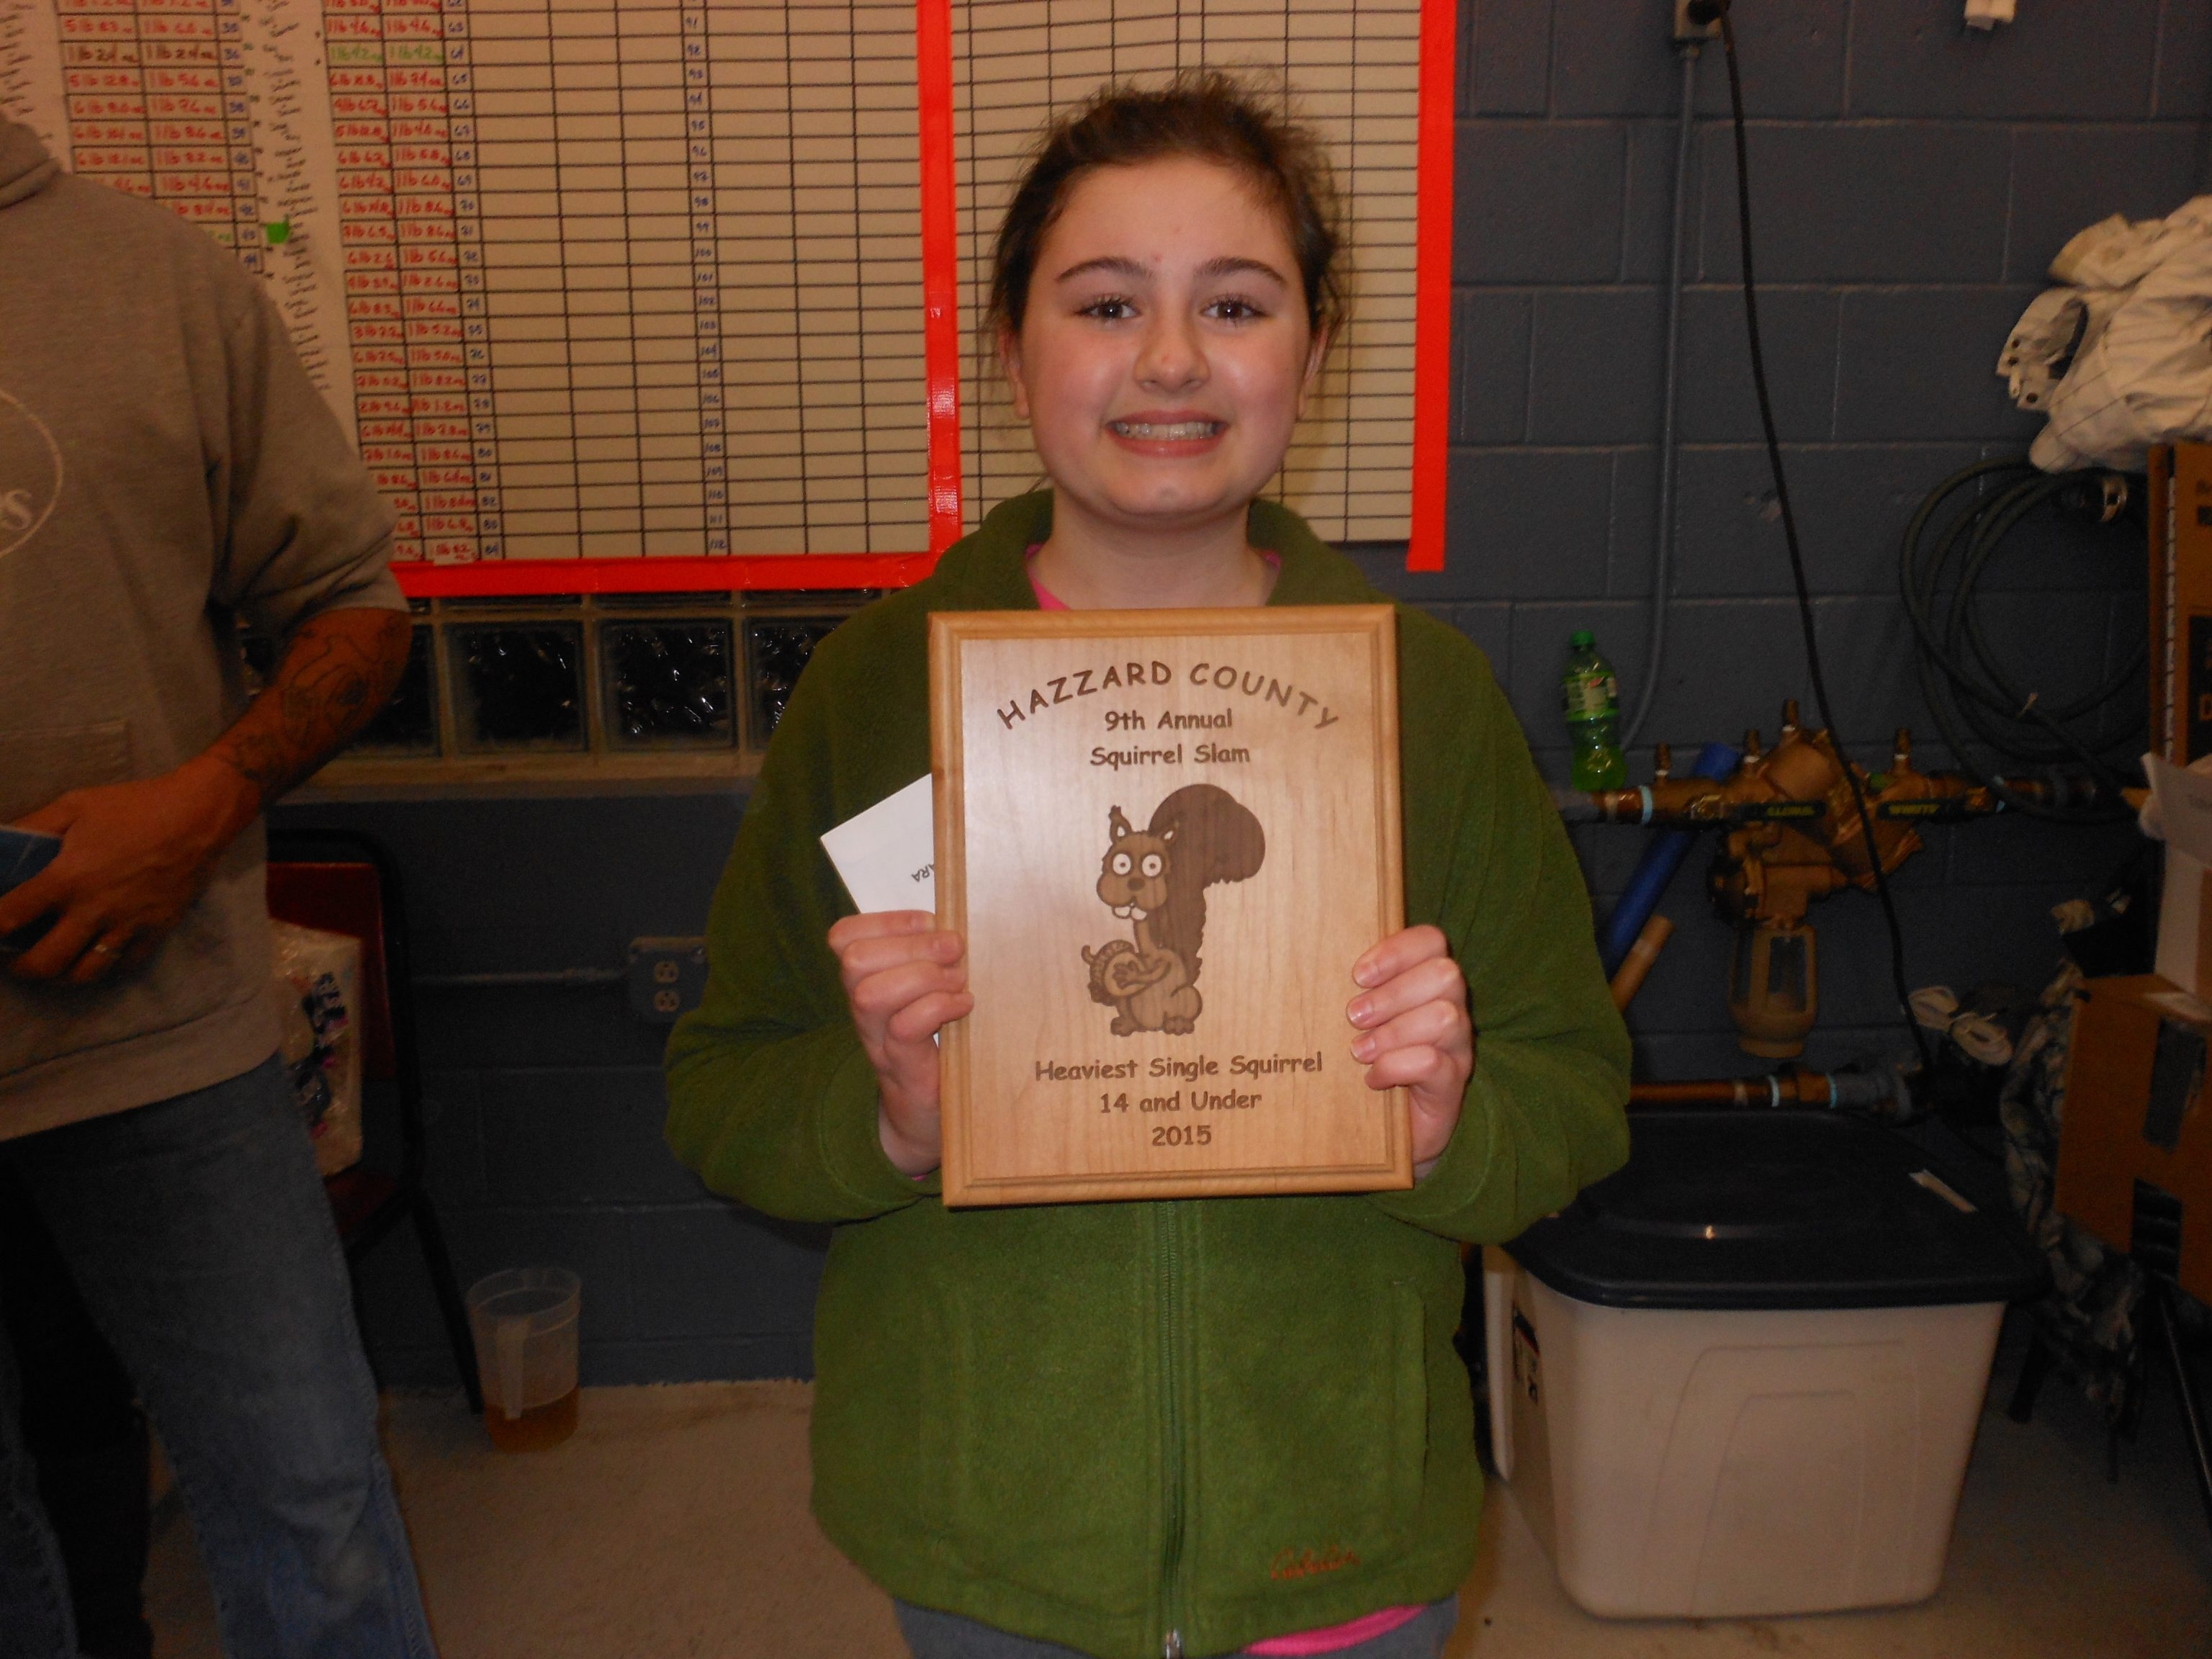 Shawana Lusk took top prize in the Youth Division of the squirrel-hunt contest.